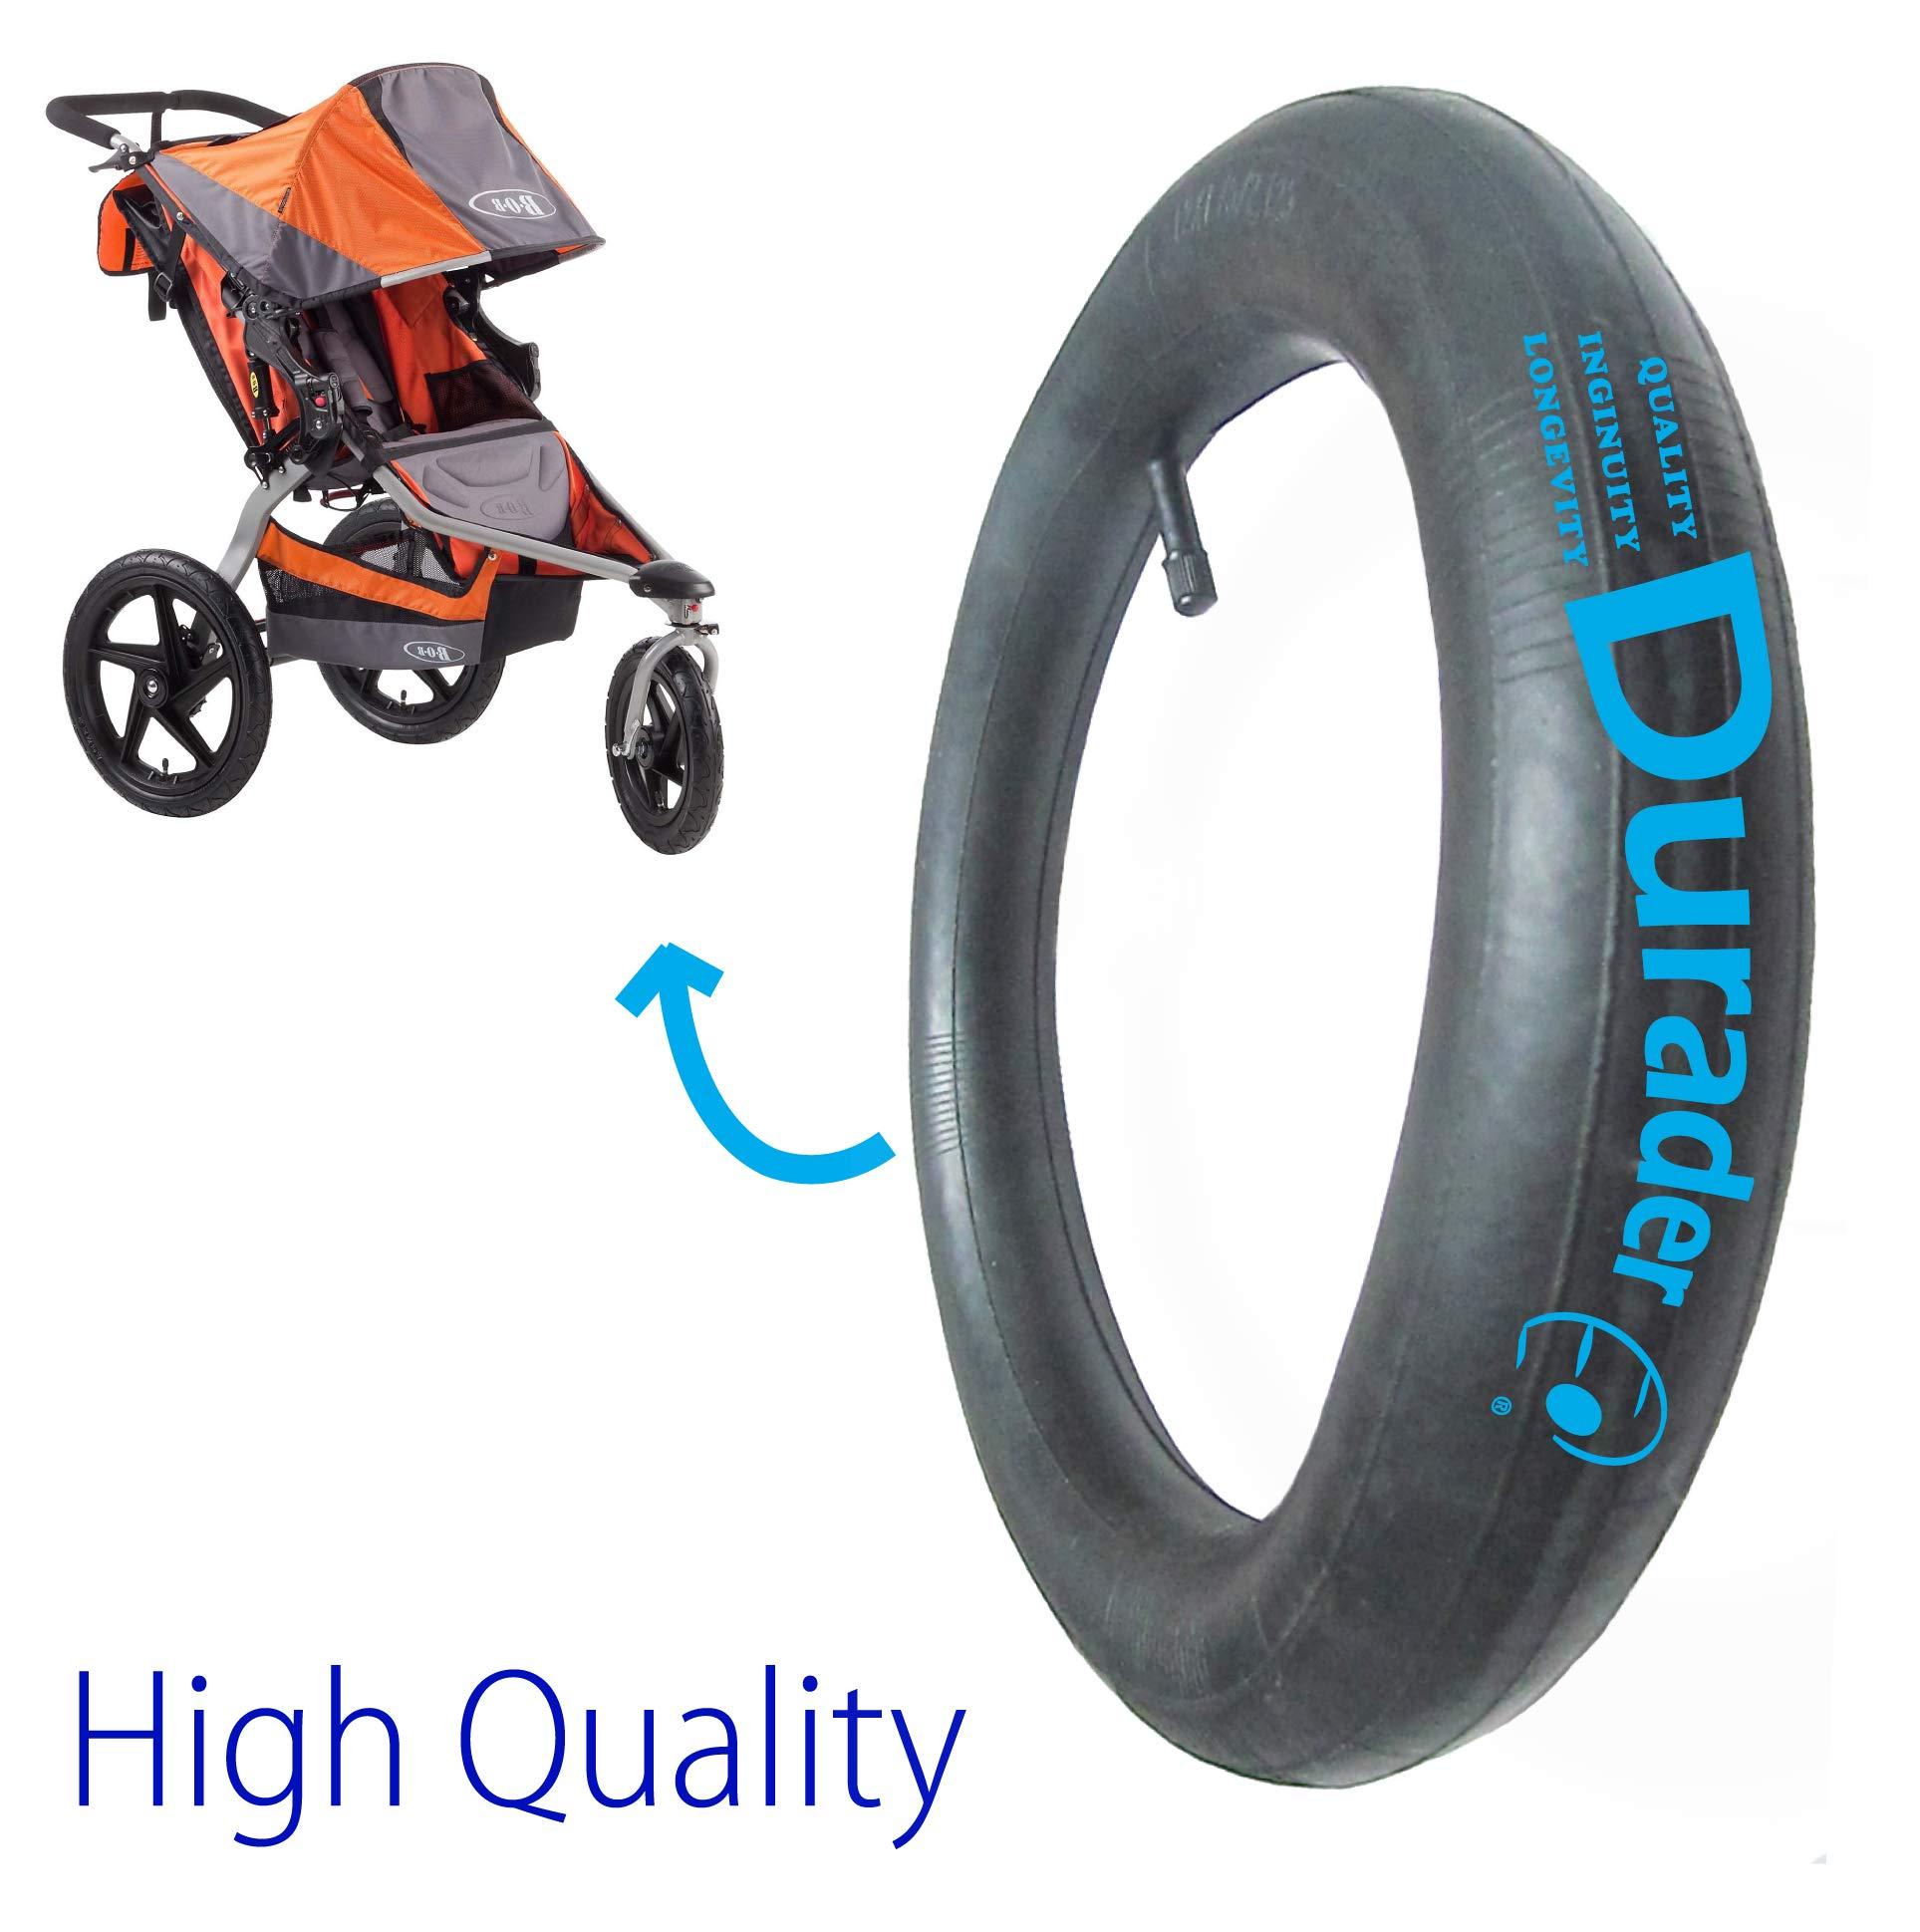 inner tube for BOB Revolution Pro stroller (front wheel) by Lineament (Image #1)